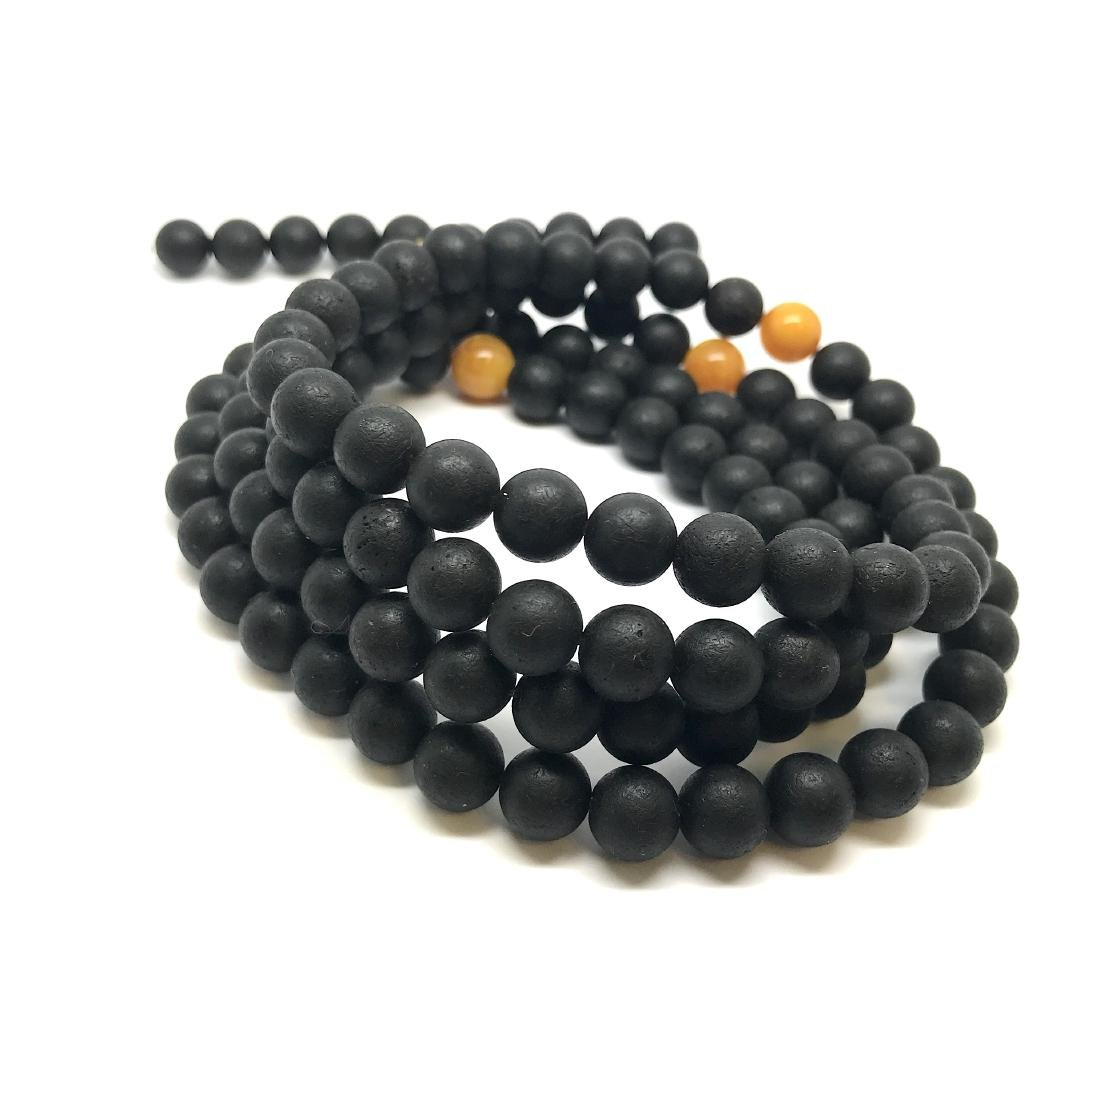 Japa mala luck necklace old Baltic amber beads - 5